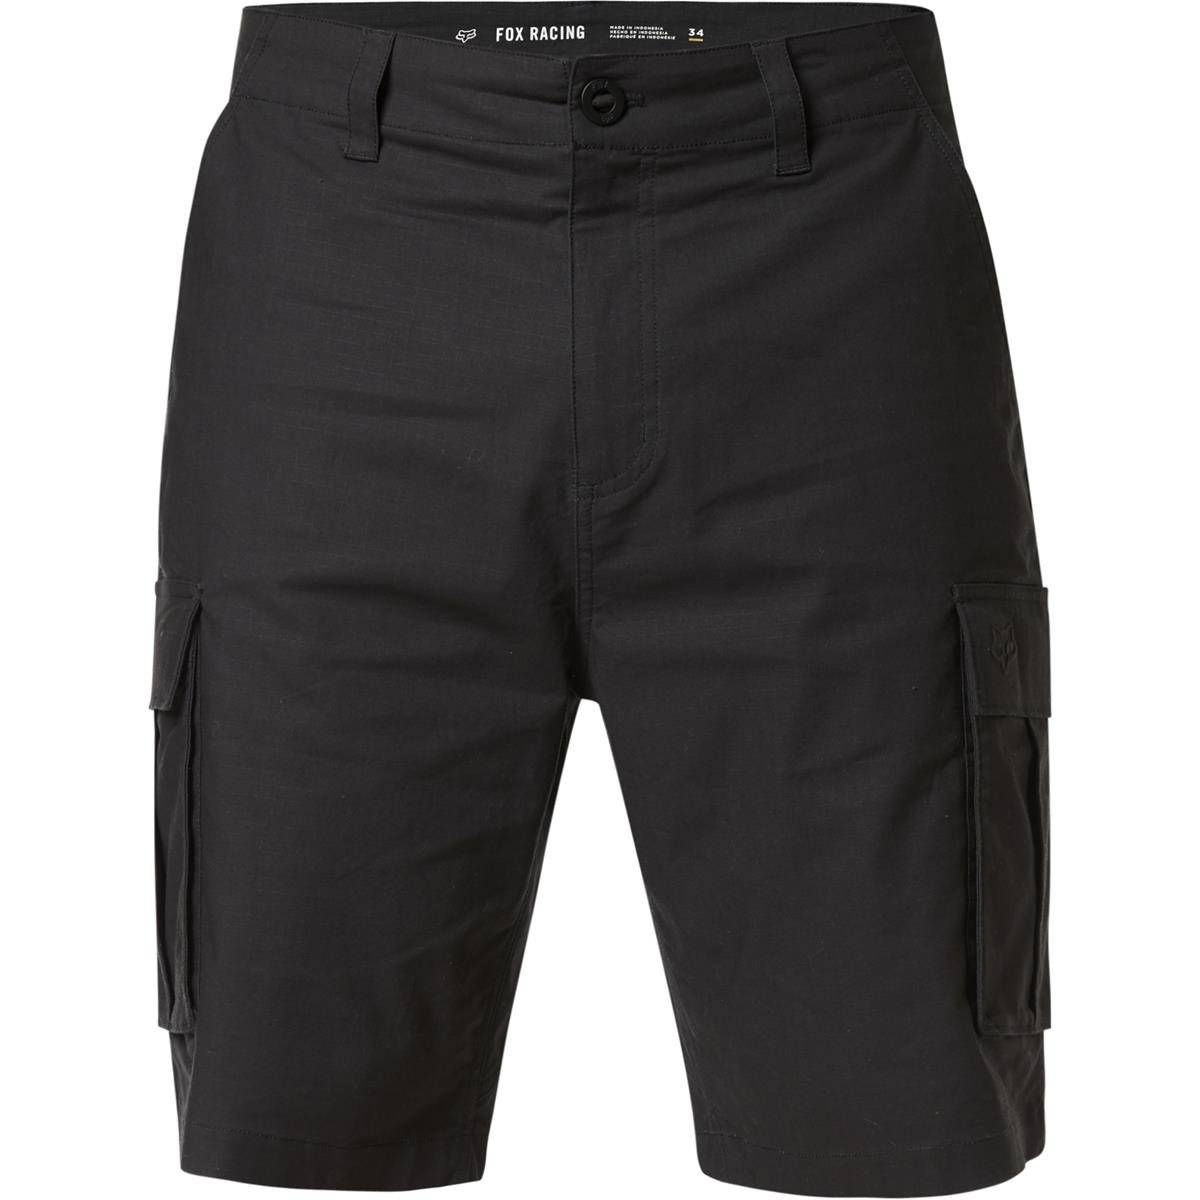 Fox Shorts Slambozo 2.0 - 30 - Noir